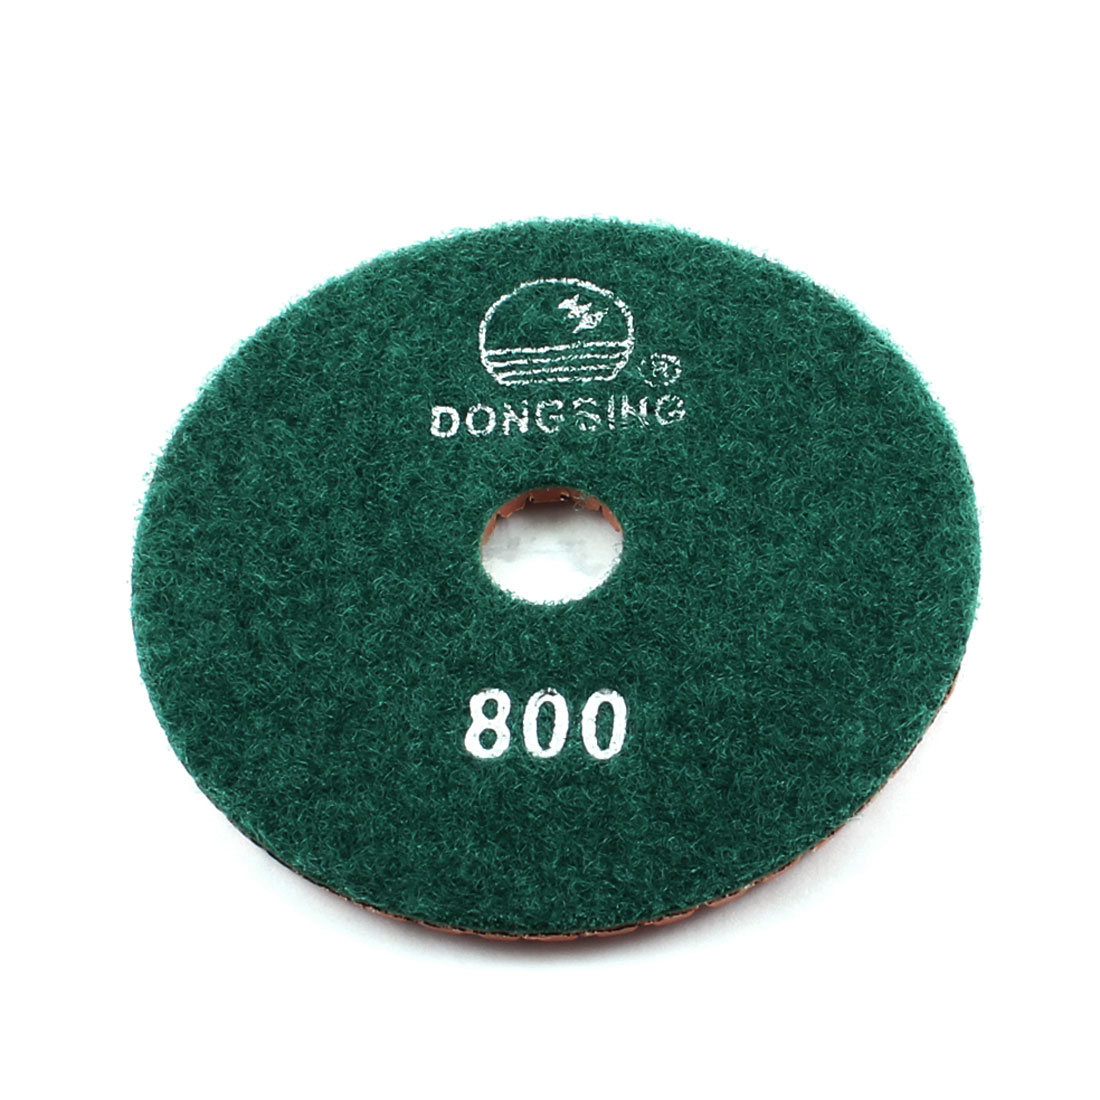 Green 800 Grit Diamond Polishing Pad for Granite Marble Concrete Grinder